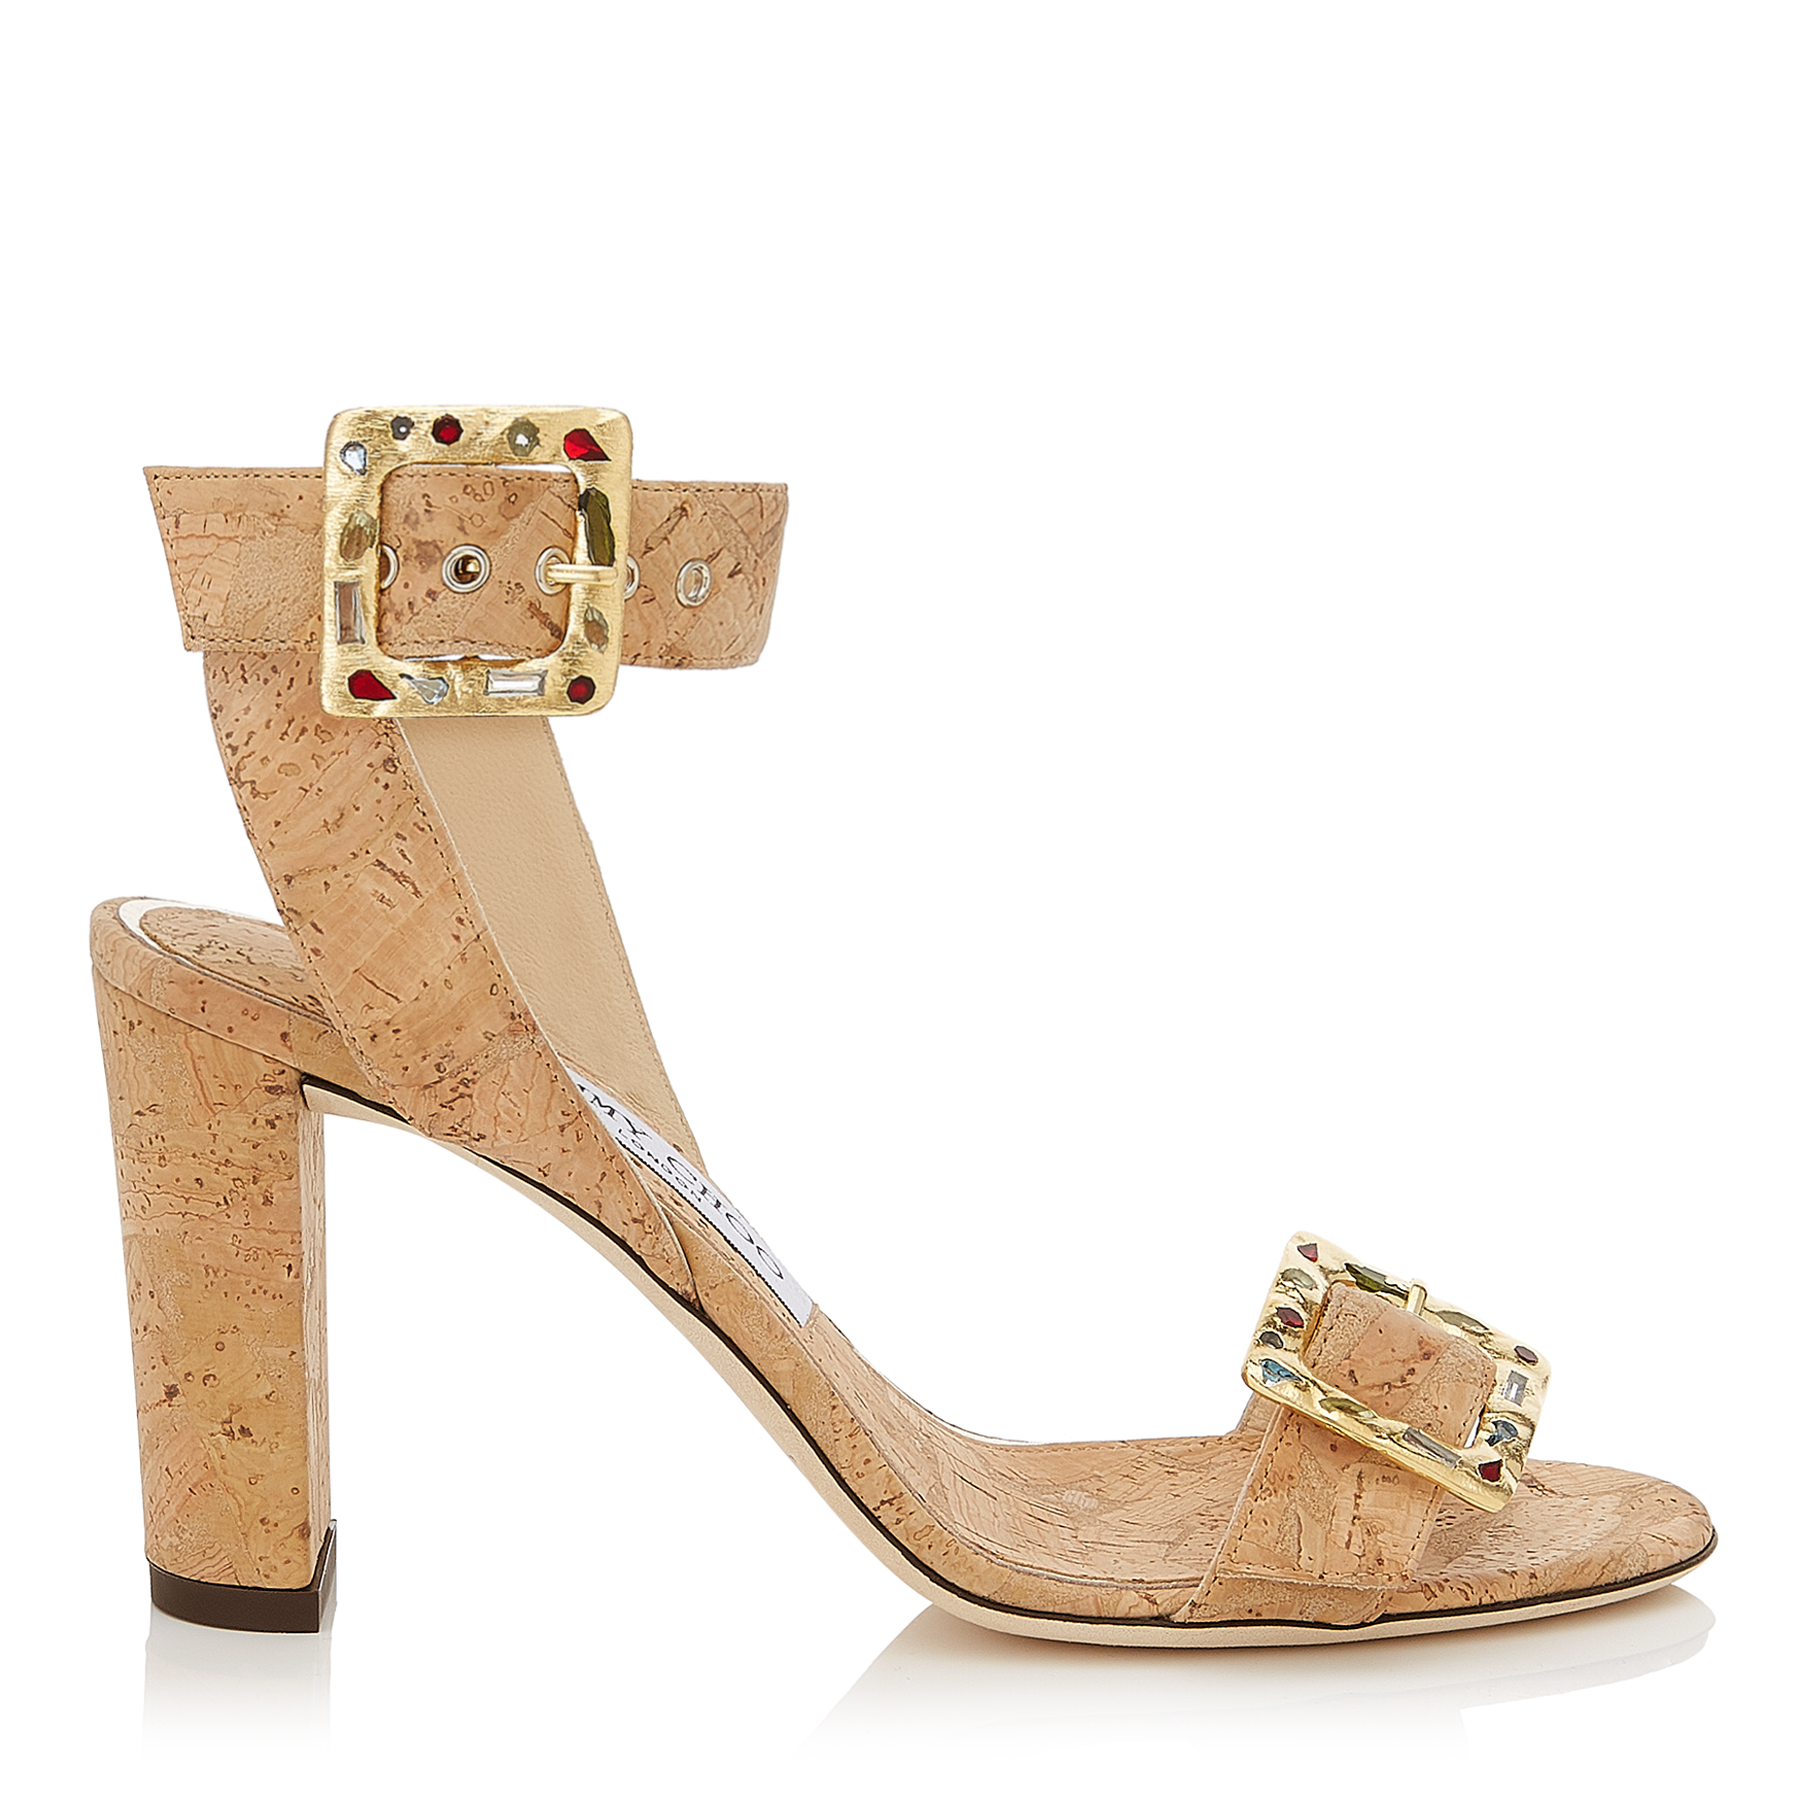 DACHA 85 Natural Cork Sandals with Jewelled Buckle by Jimmy Choo